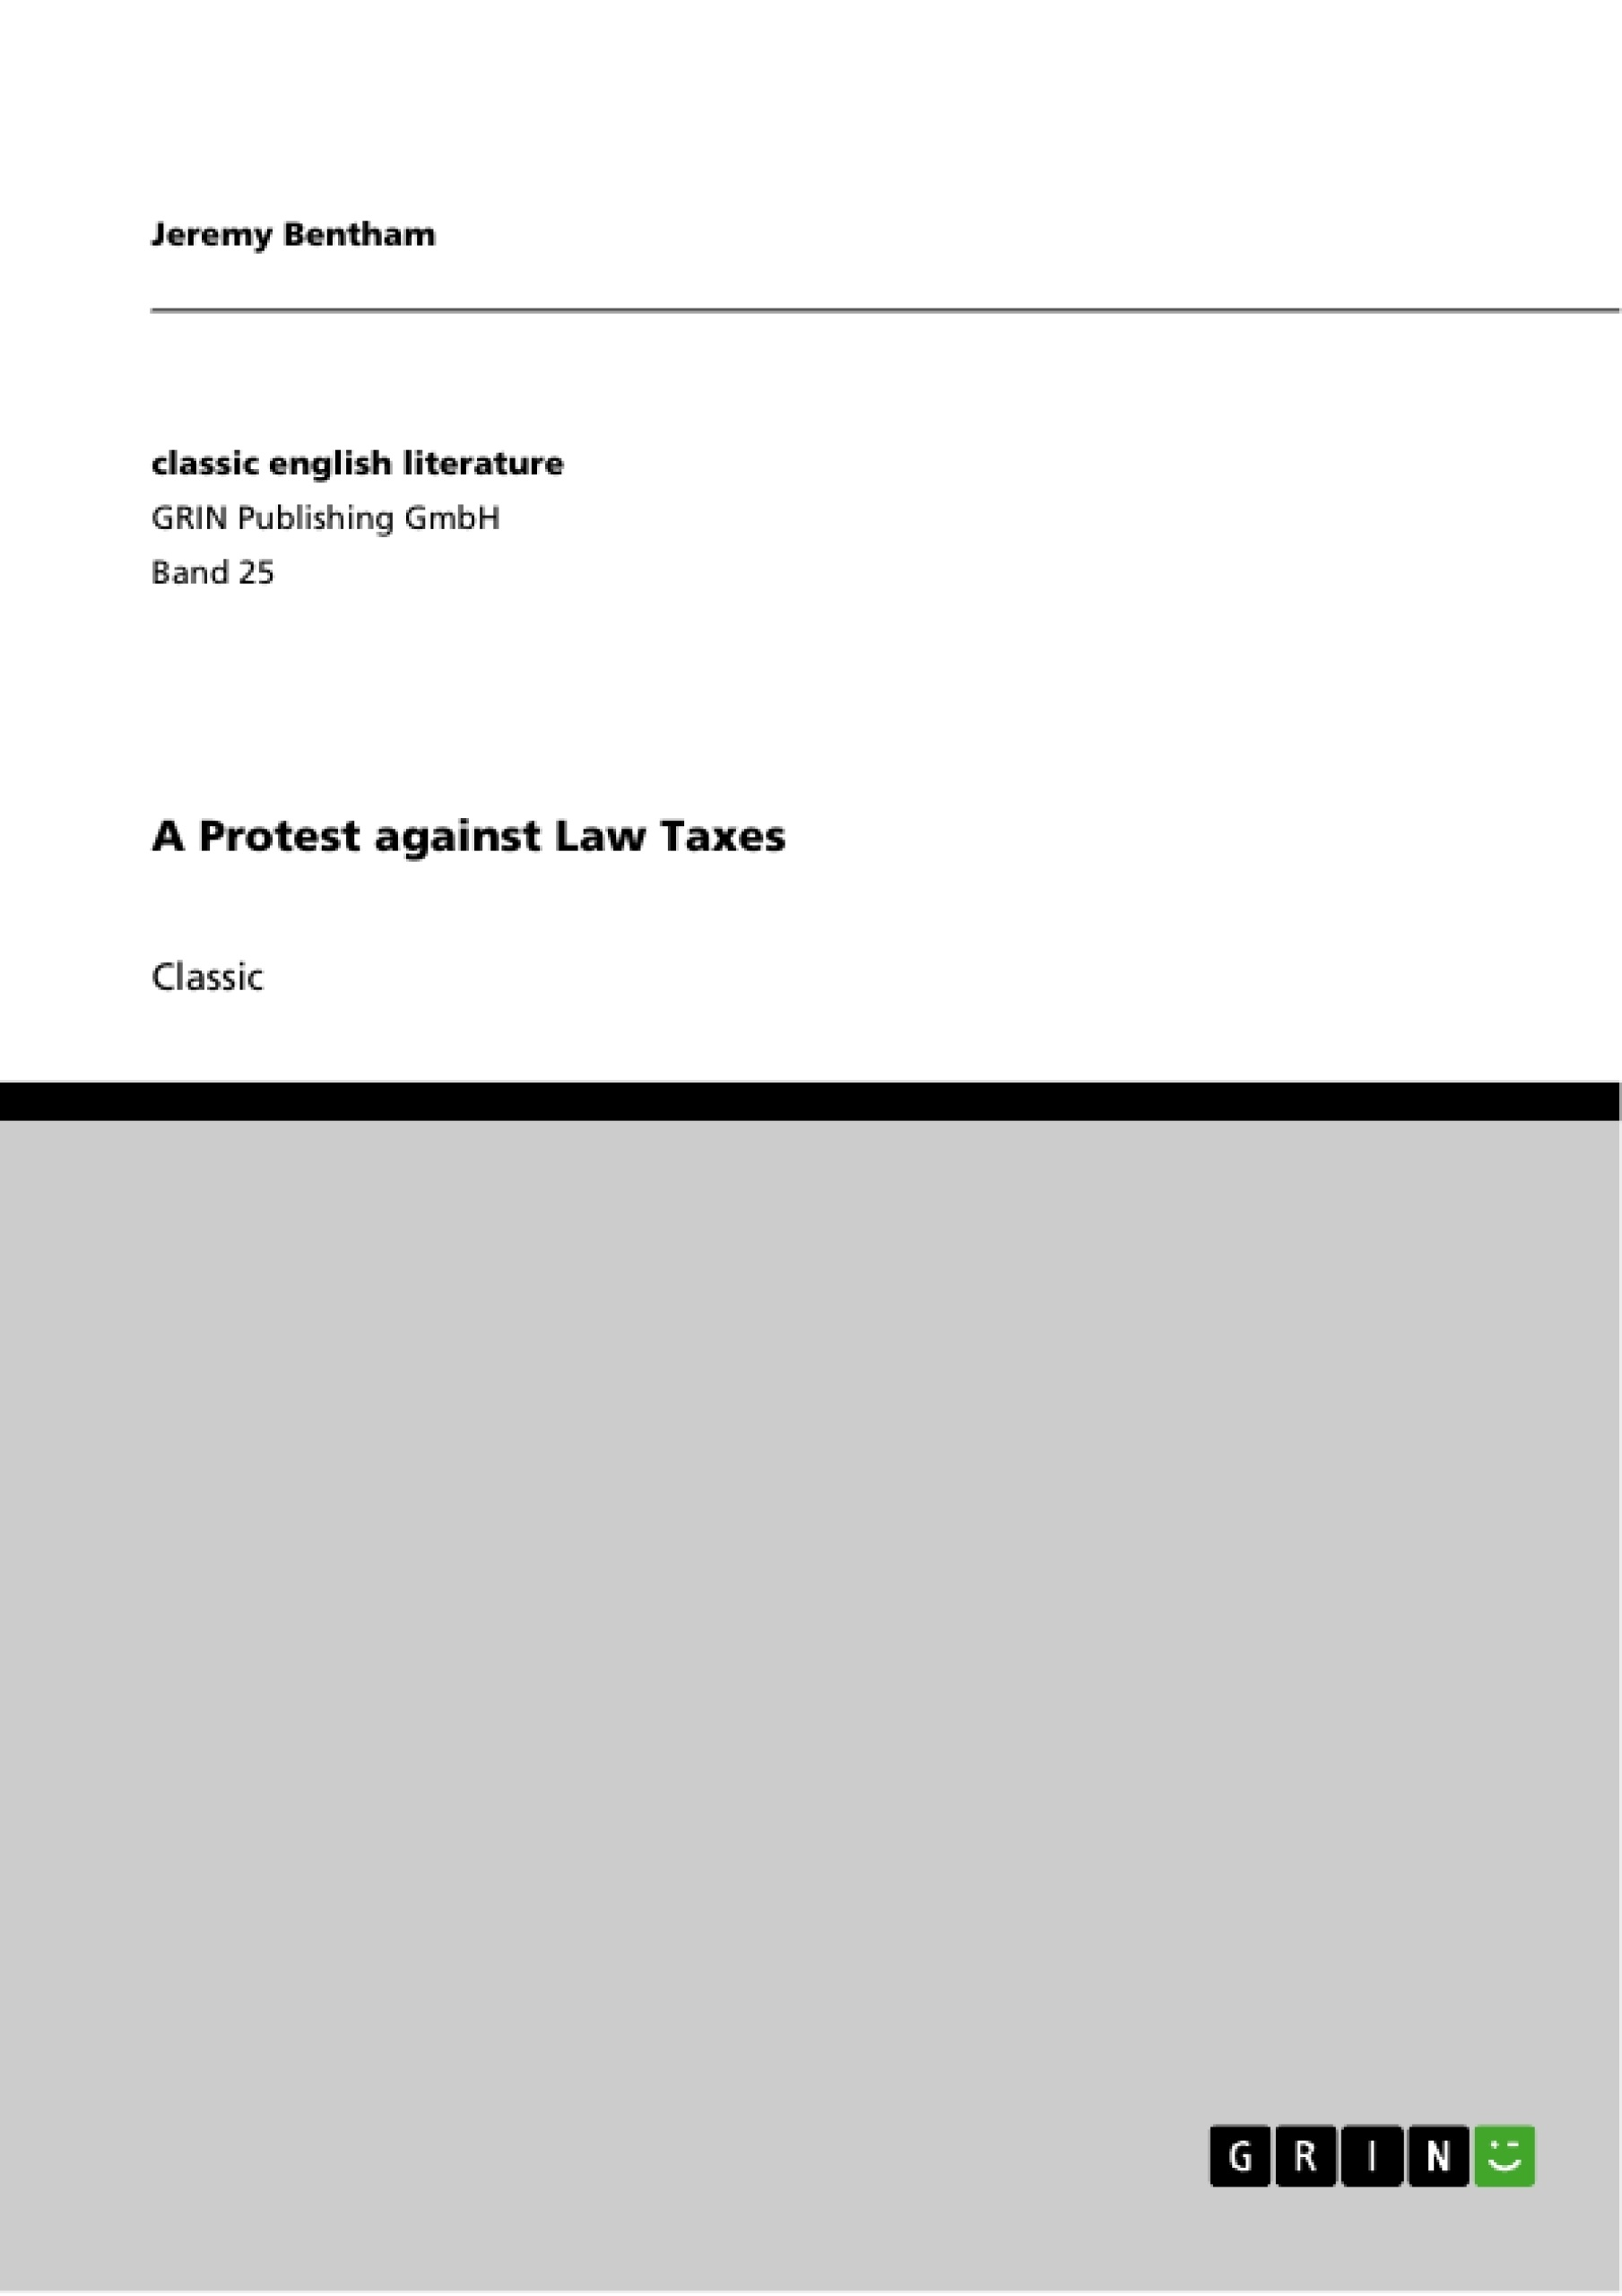 Title: A Protest against Law Taxes